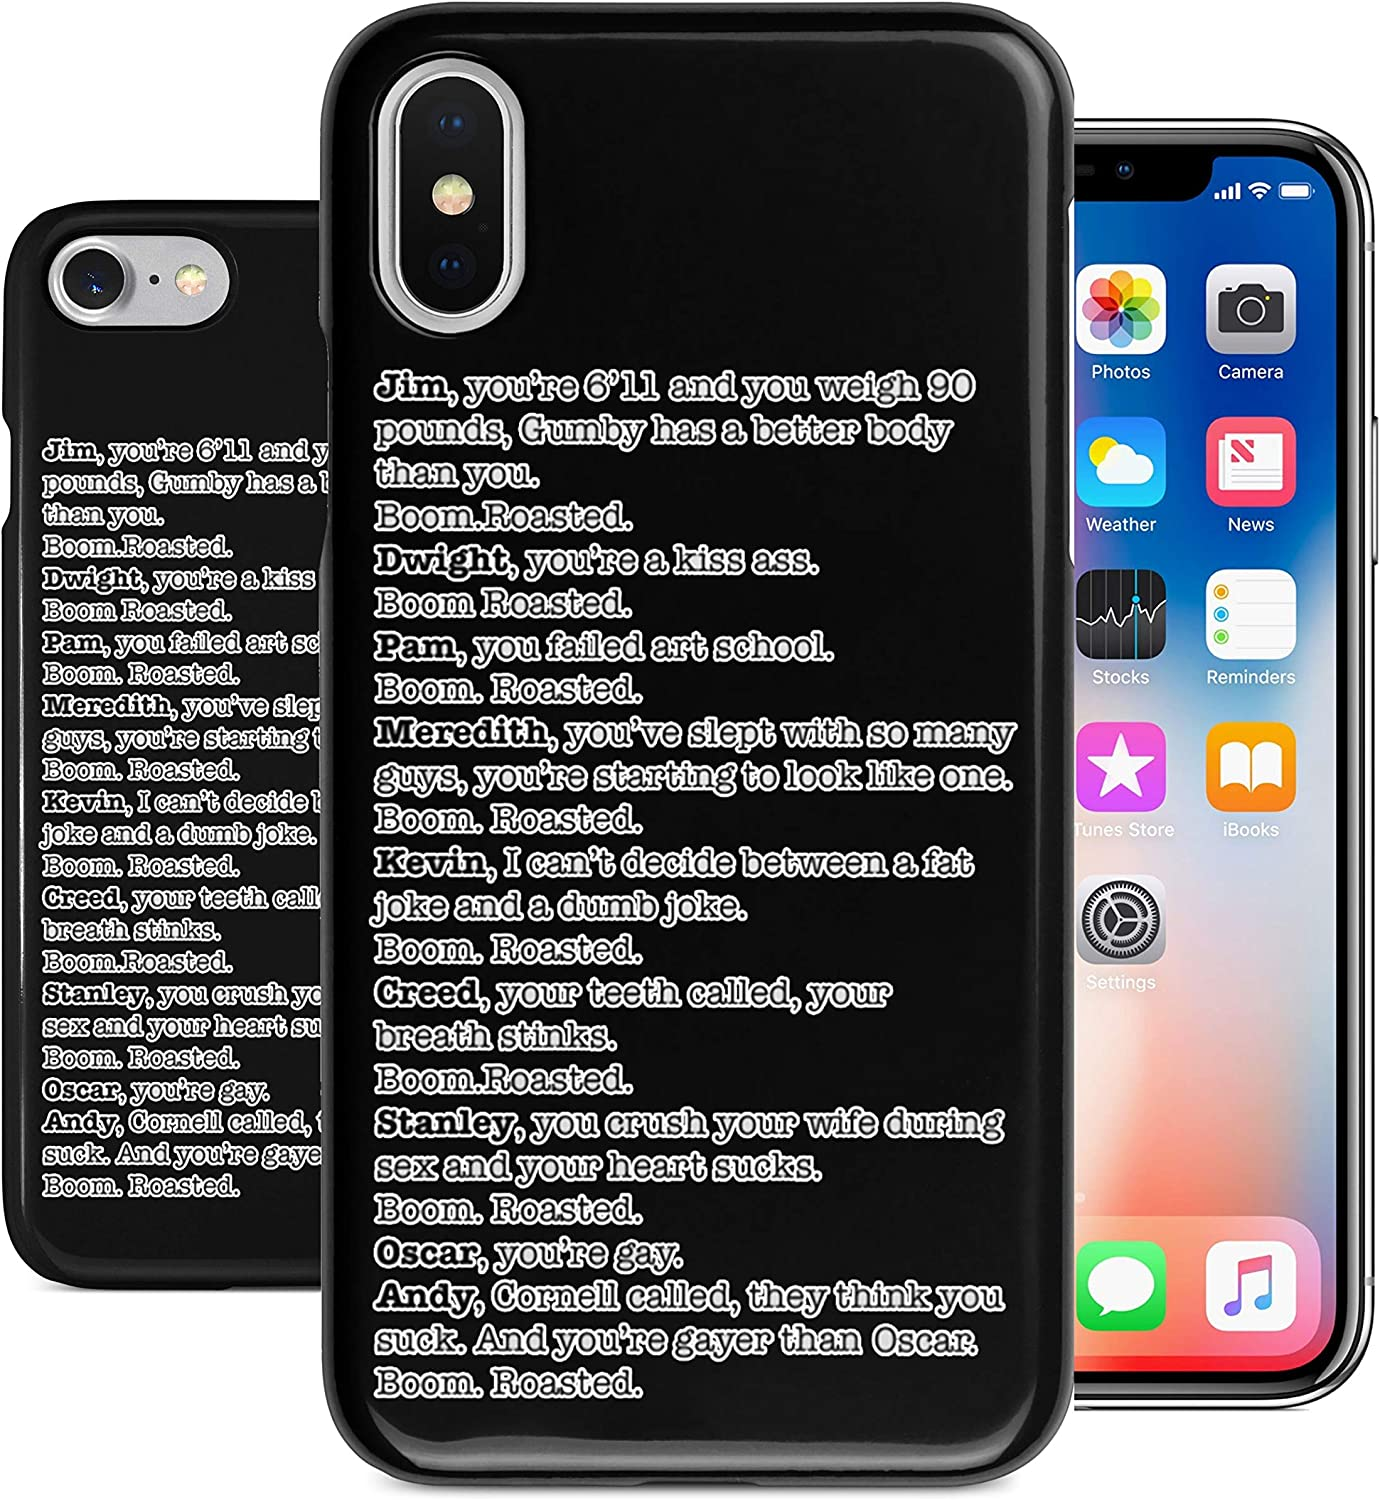 BrilliantCustoms New Boom. Roasted. The Office Michael Roast Funny Joke iPhone Case | iPhone 6 6s 6+ 7 7+ 8 8+ X XS XR Max | Black (iPhone XR)